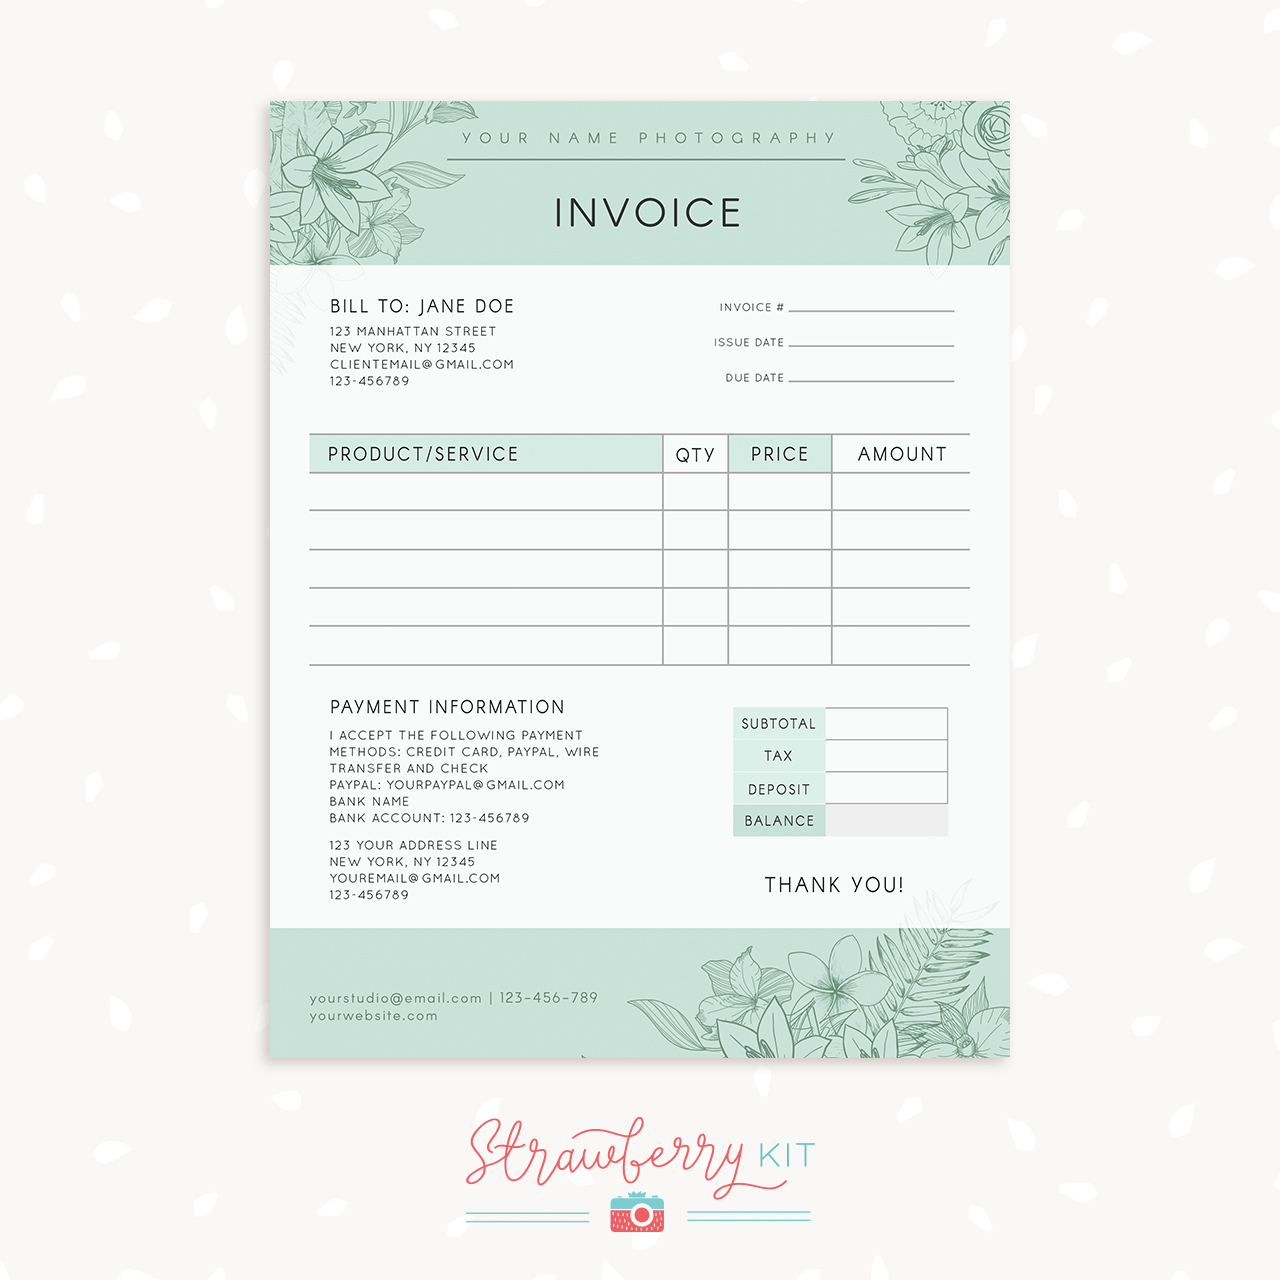 Floral Photography Invoice Template Strawberry Kit